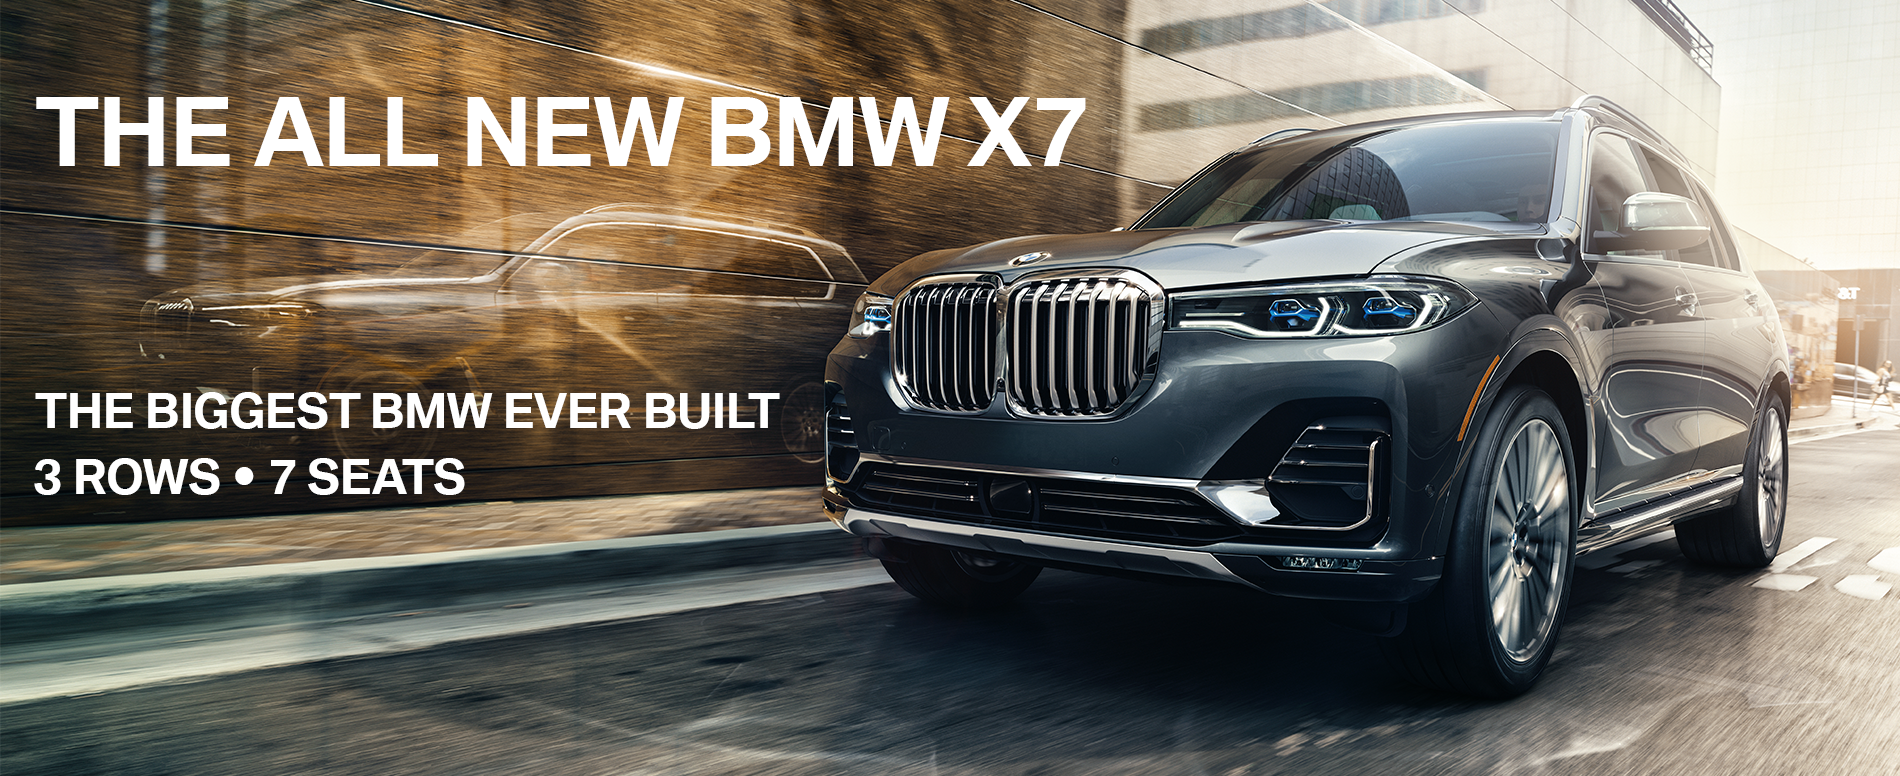 All new BMW X7 in motion, overlay reads 'The all new BMW X7. The biggest BMW ever built. 3 rows, 7 seats.'